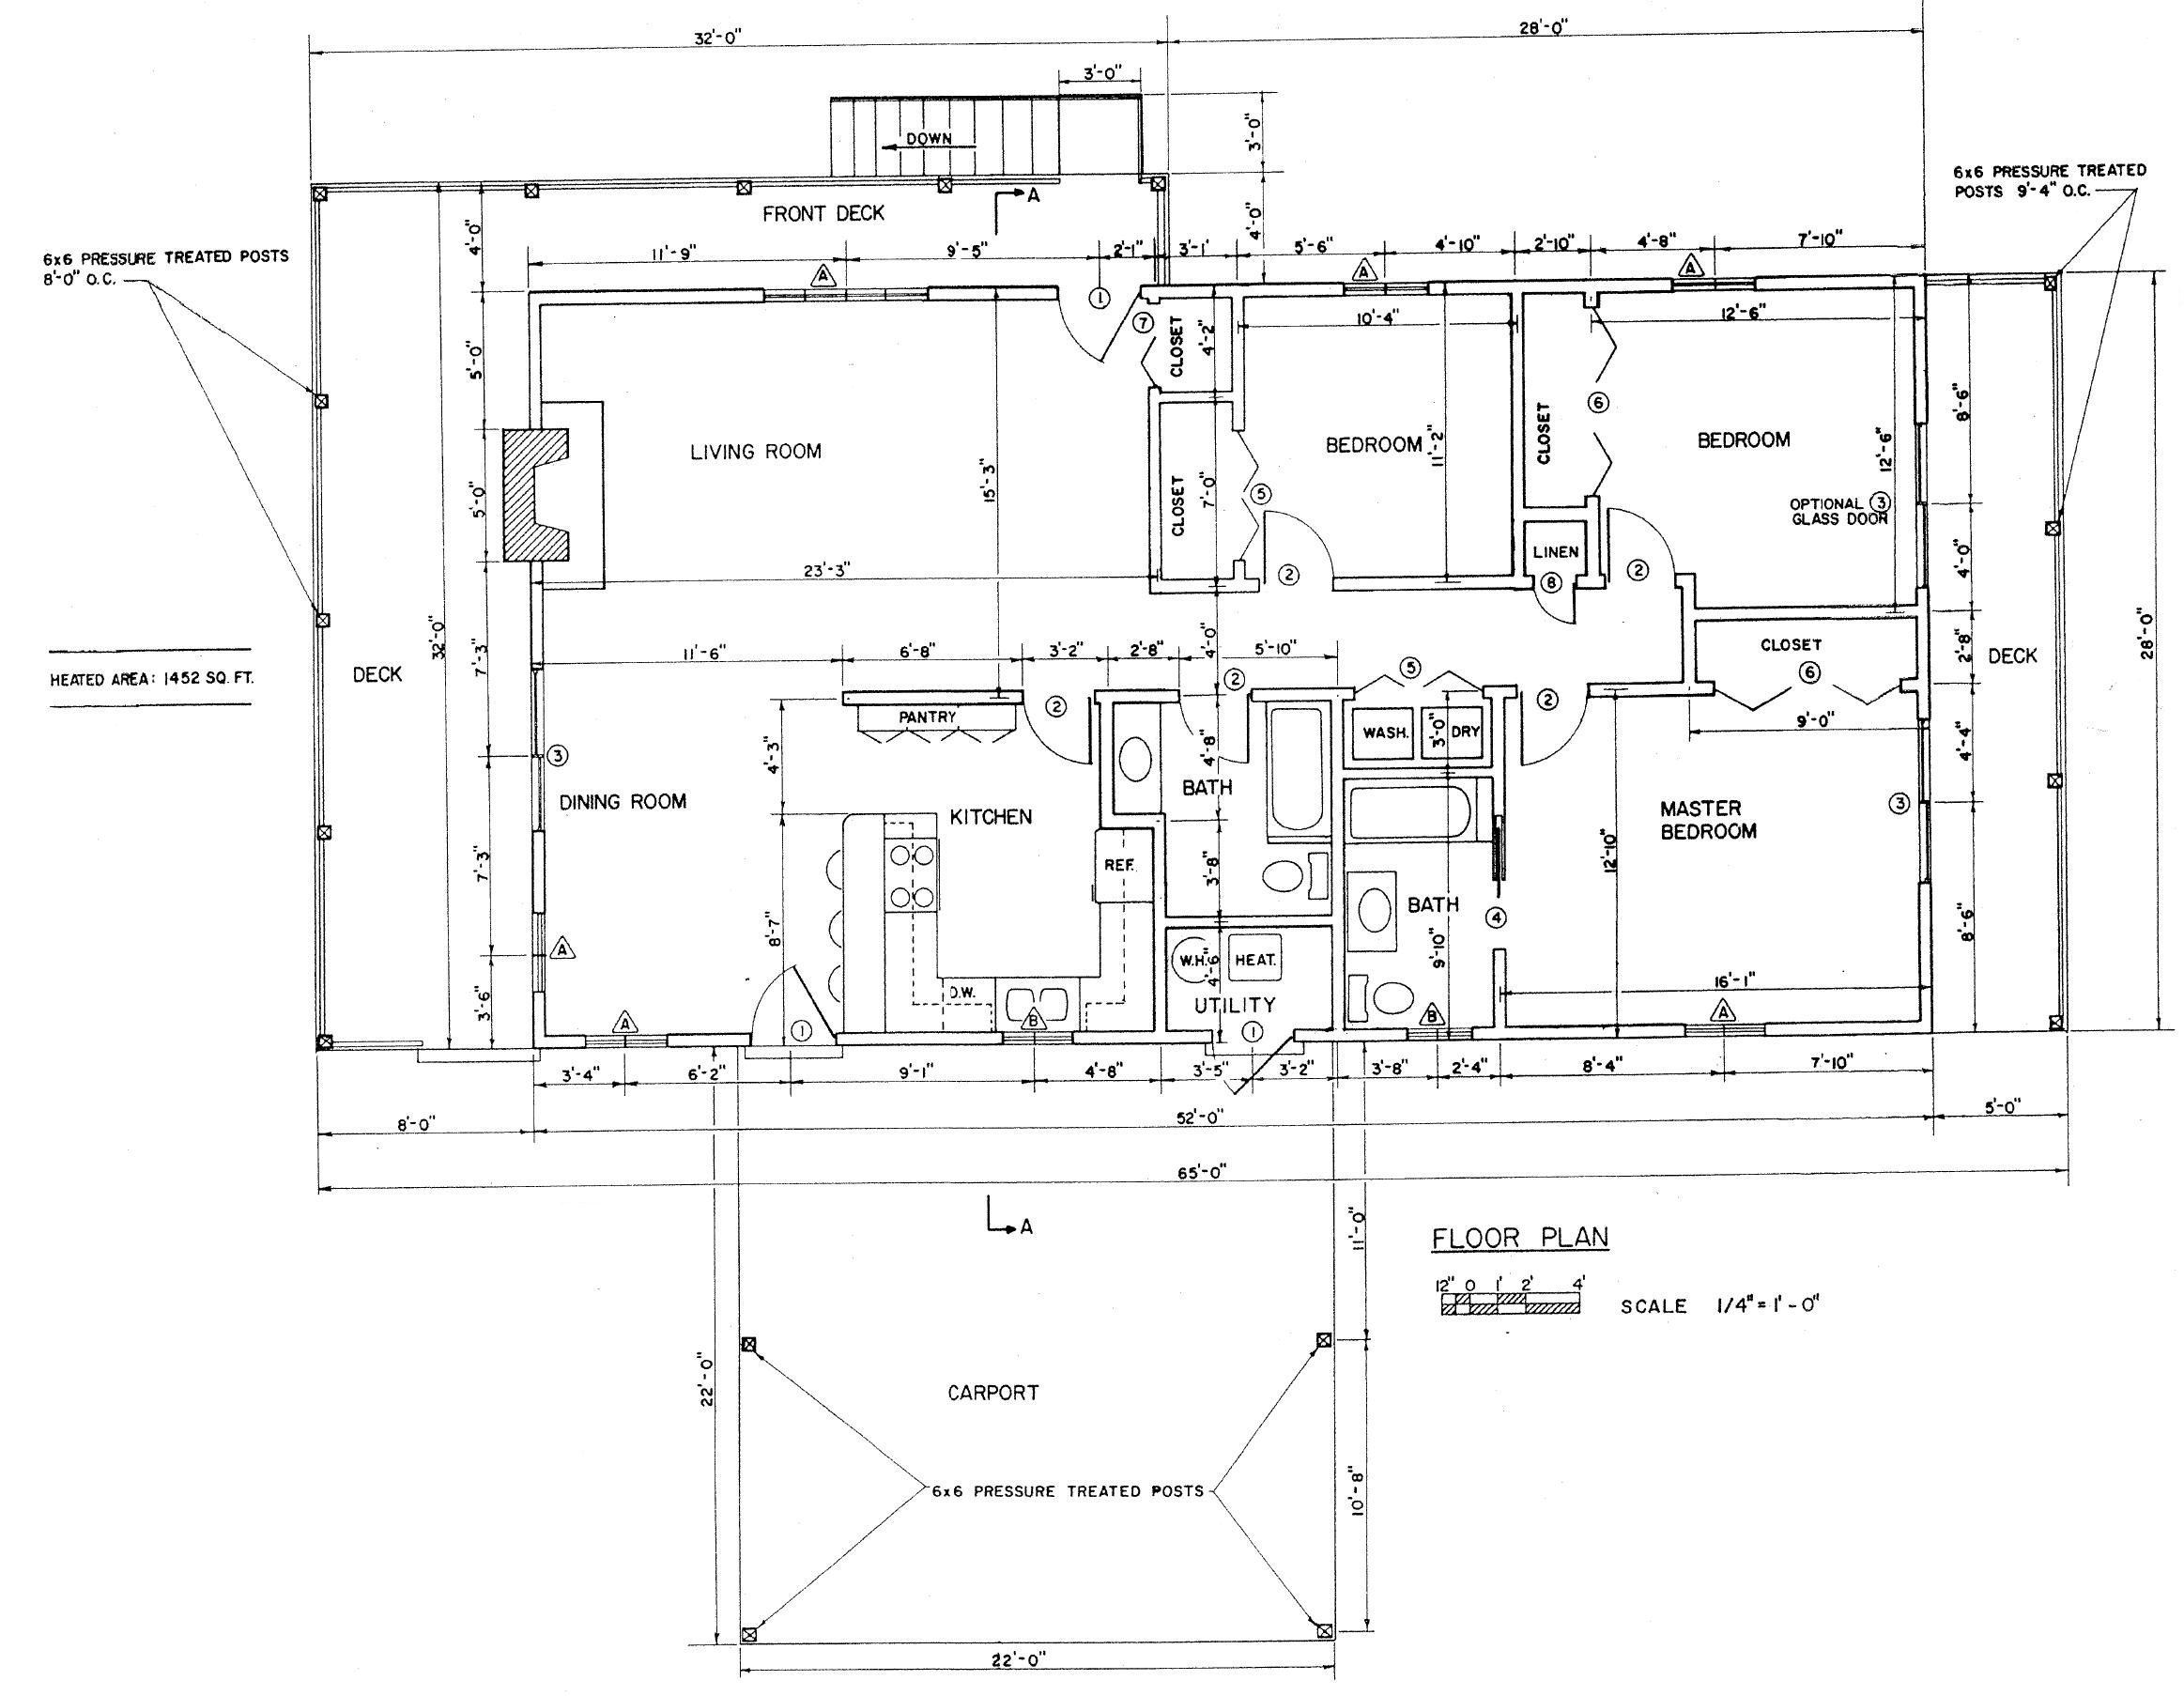 House plans freedenenasvalencia House blueprints free